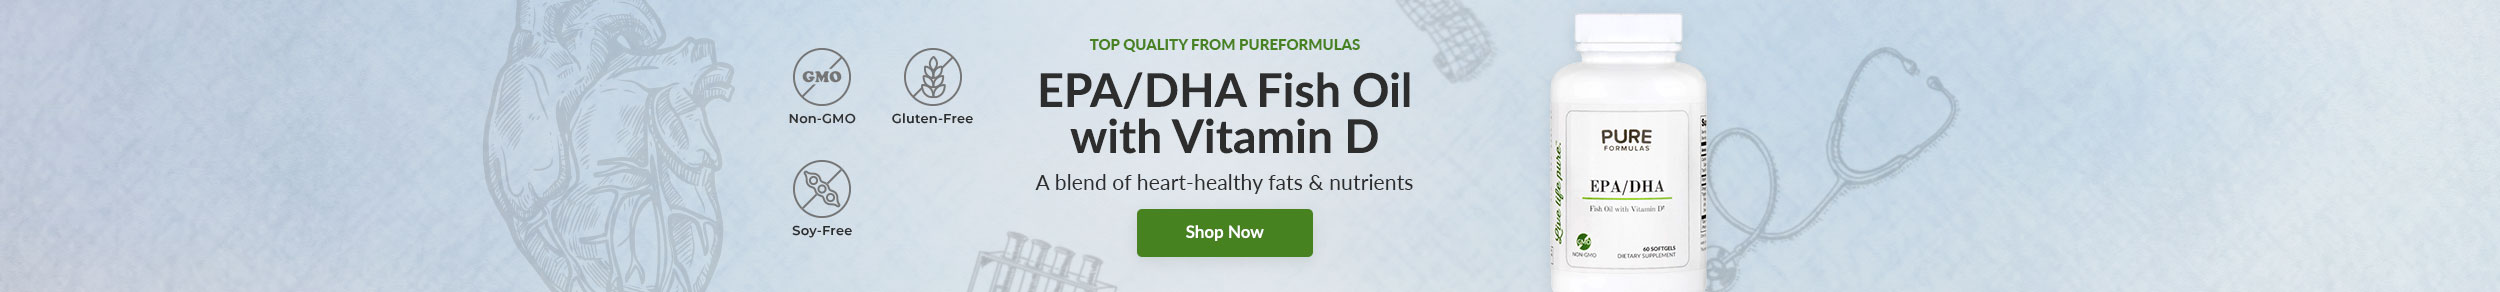 Top Quality from PureFormulas: EPA/DHA Fish Oil with Vitamin D - A blend of heart-healthy fats & nutrients